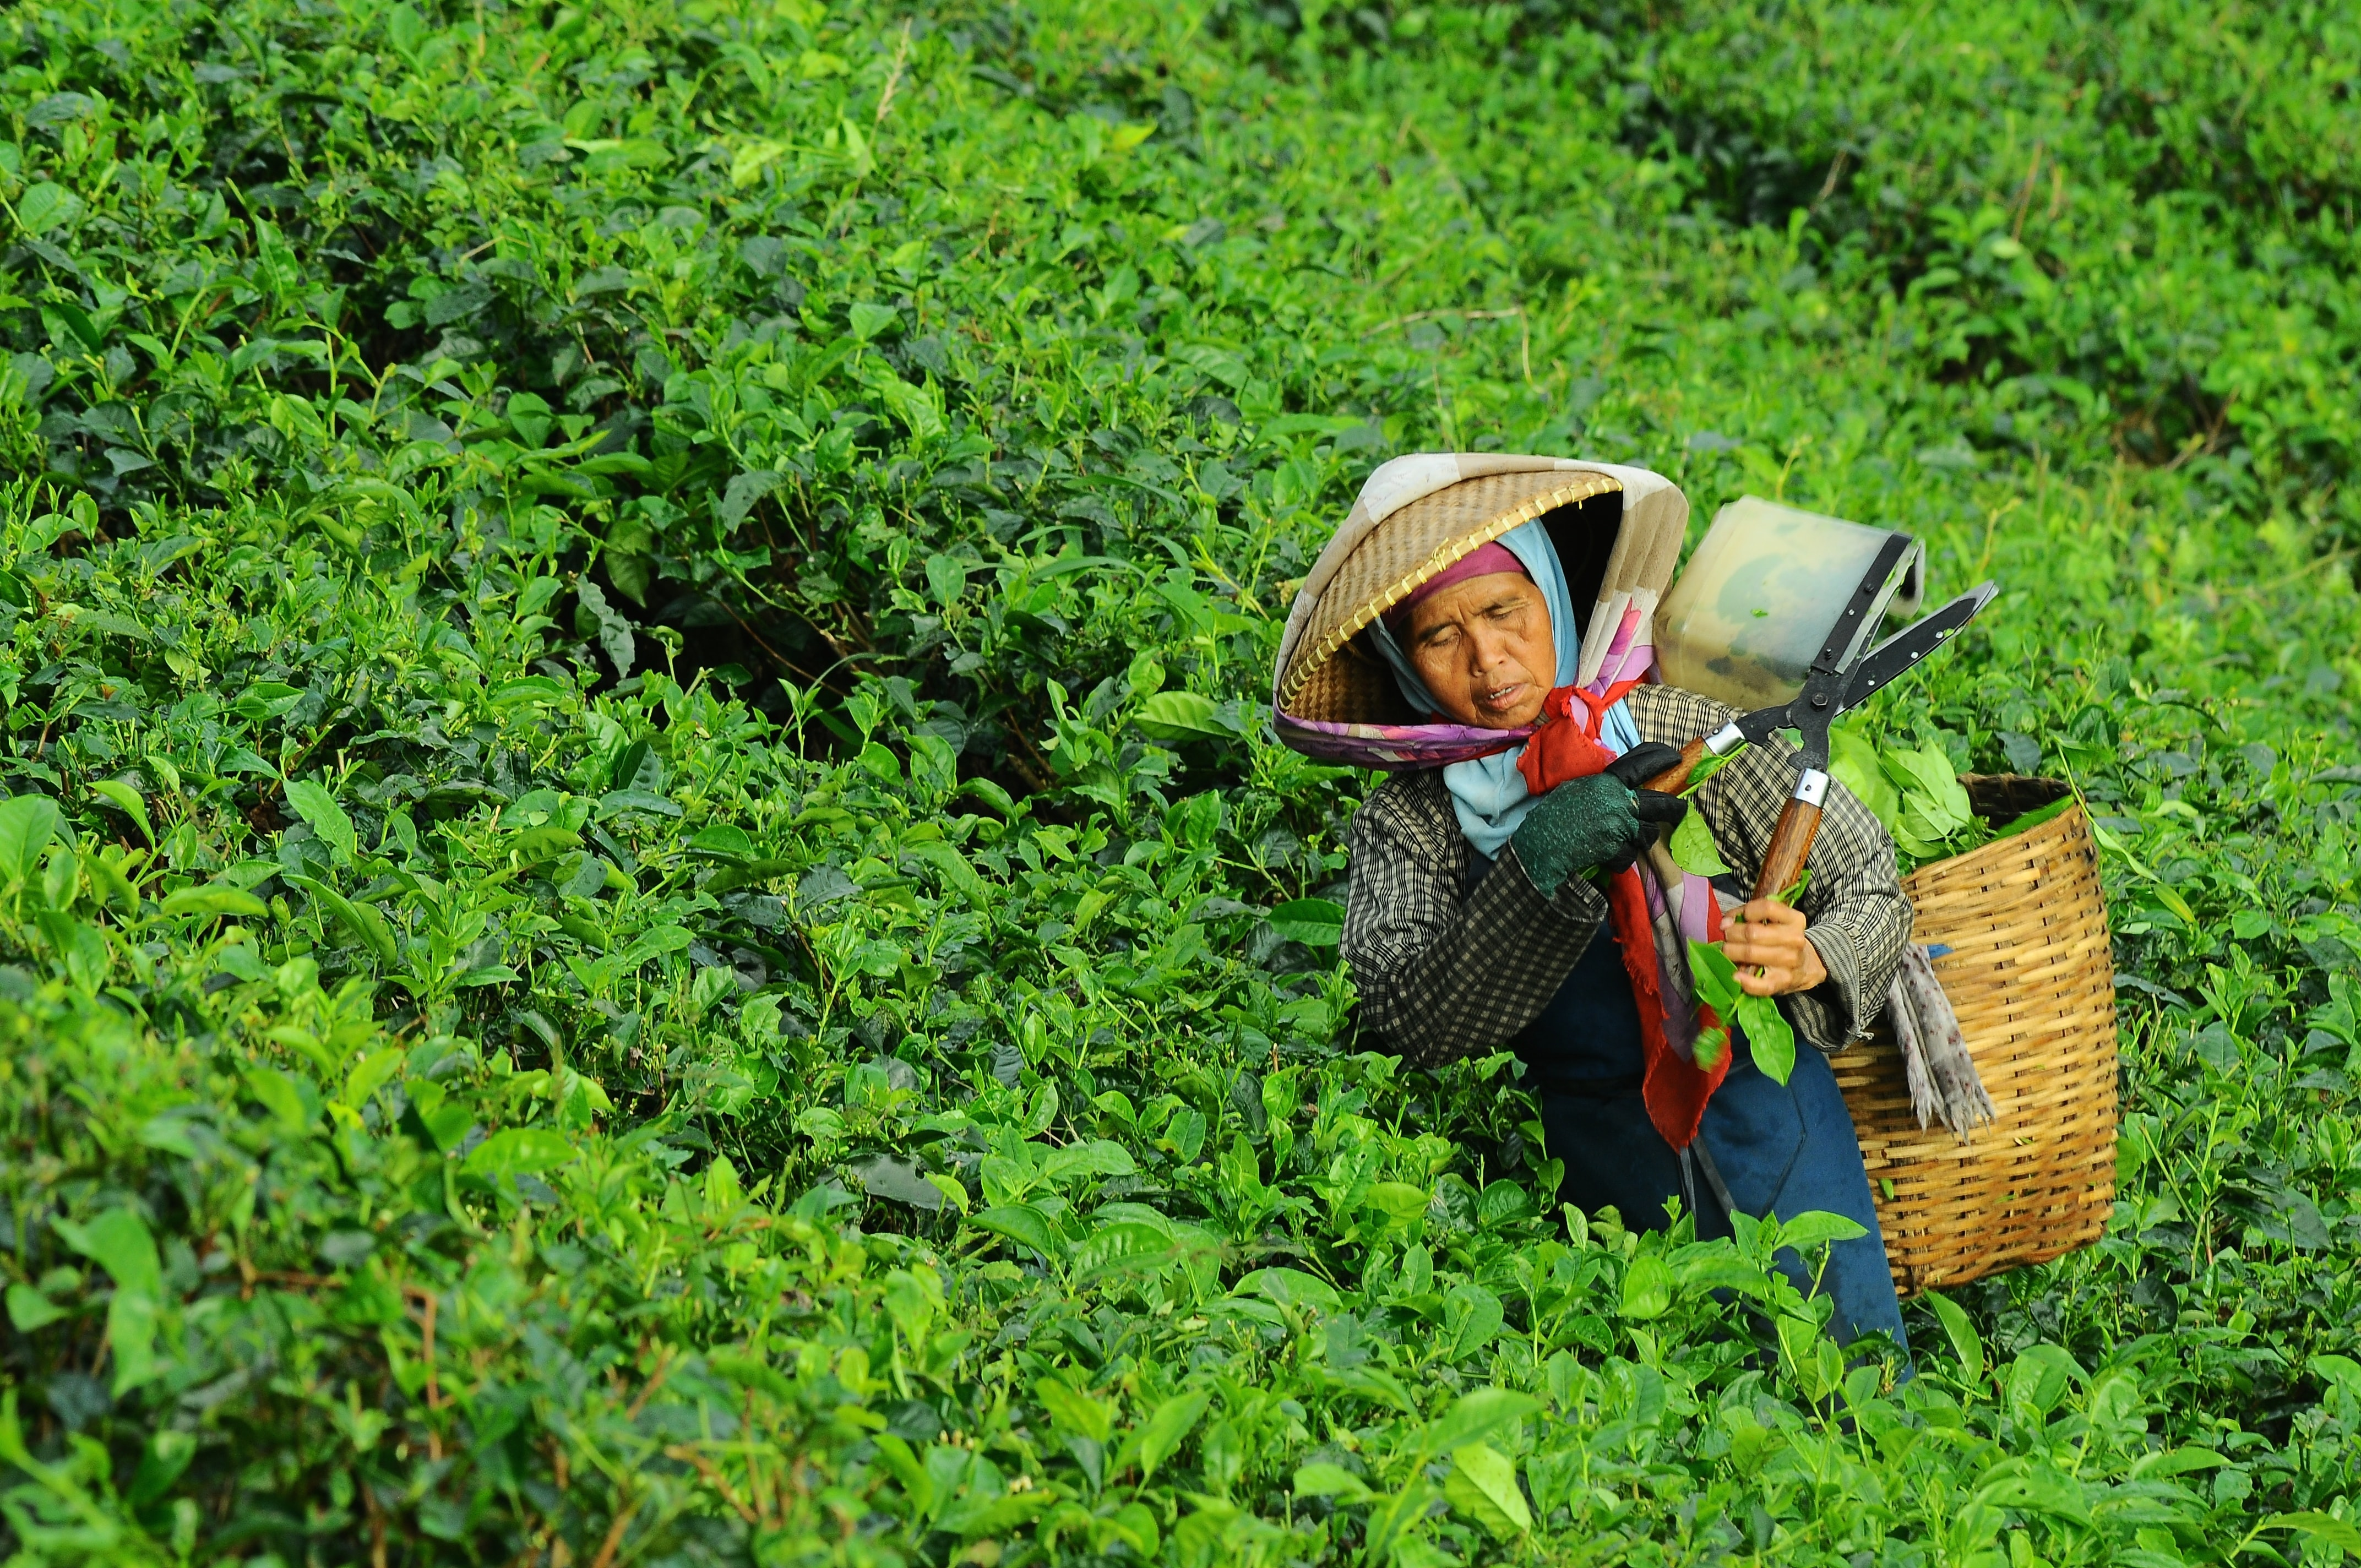 A woman works in a field, collecting tea leaves while wearing a hat and protective clothing